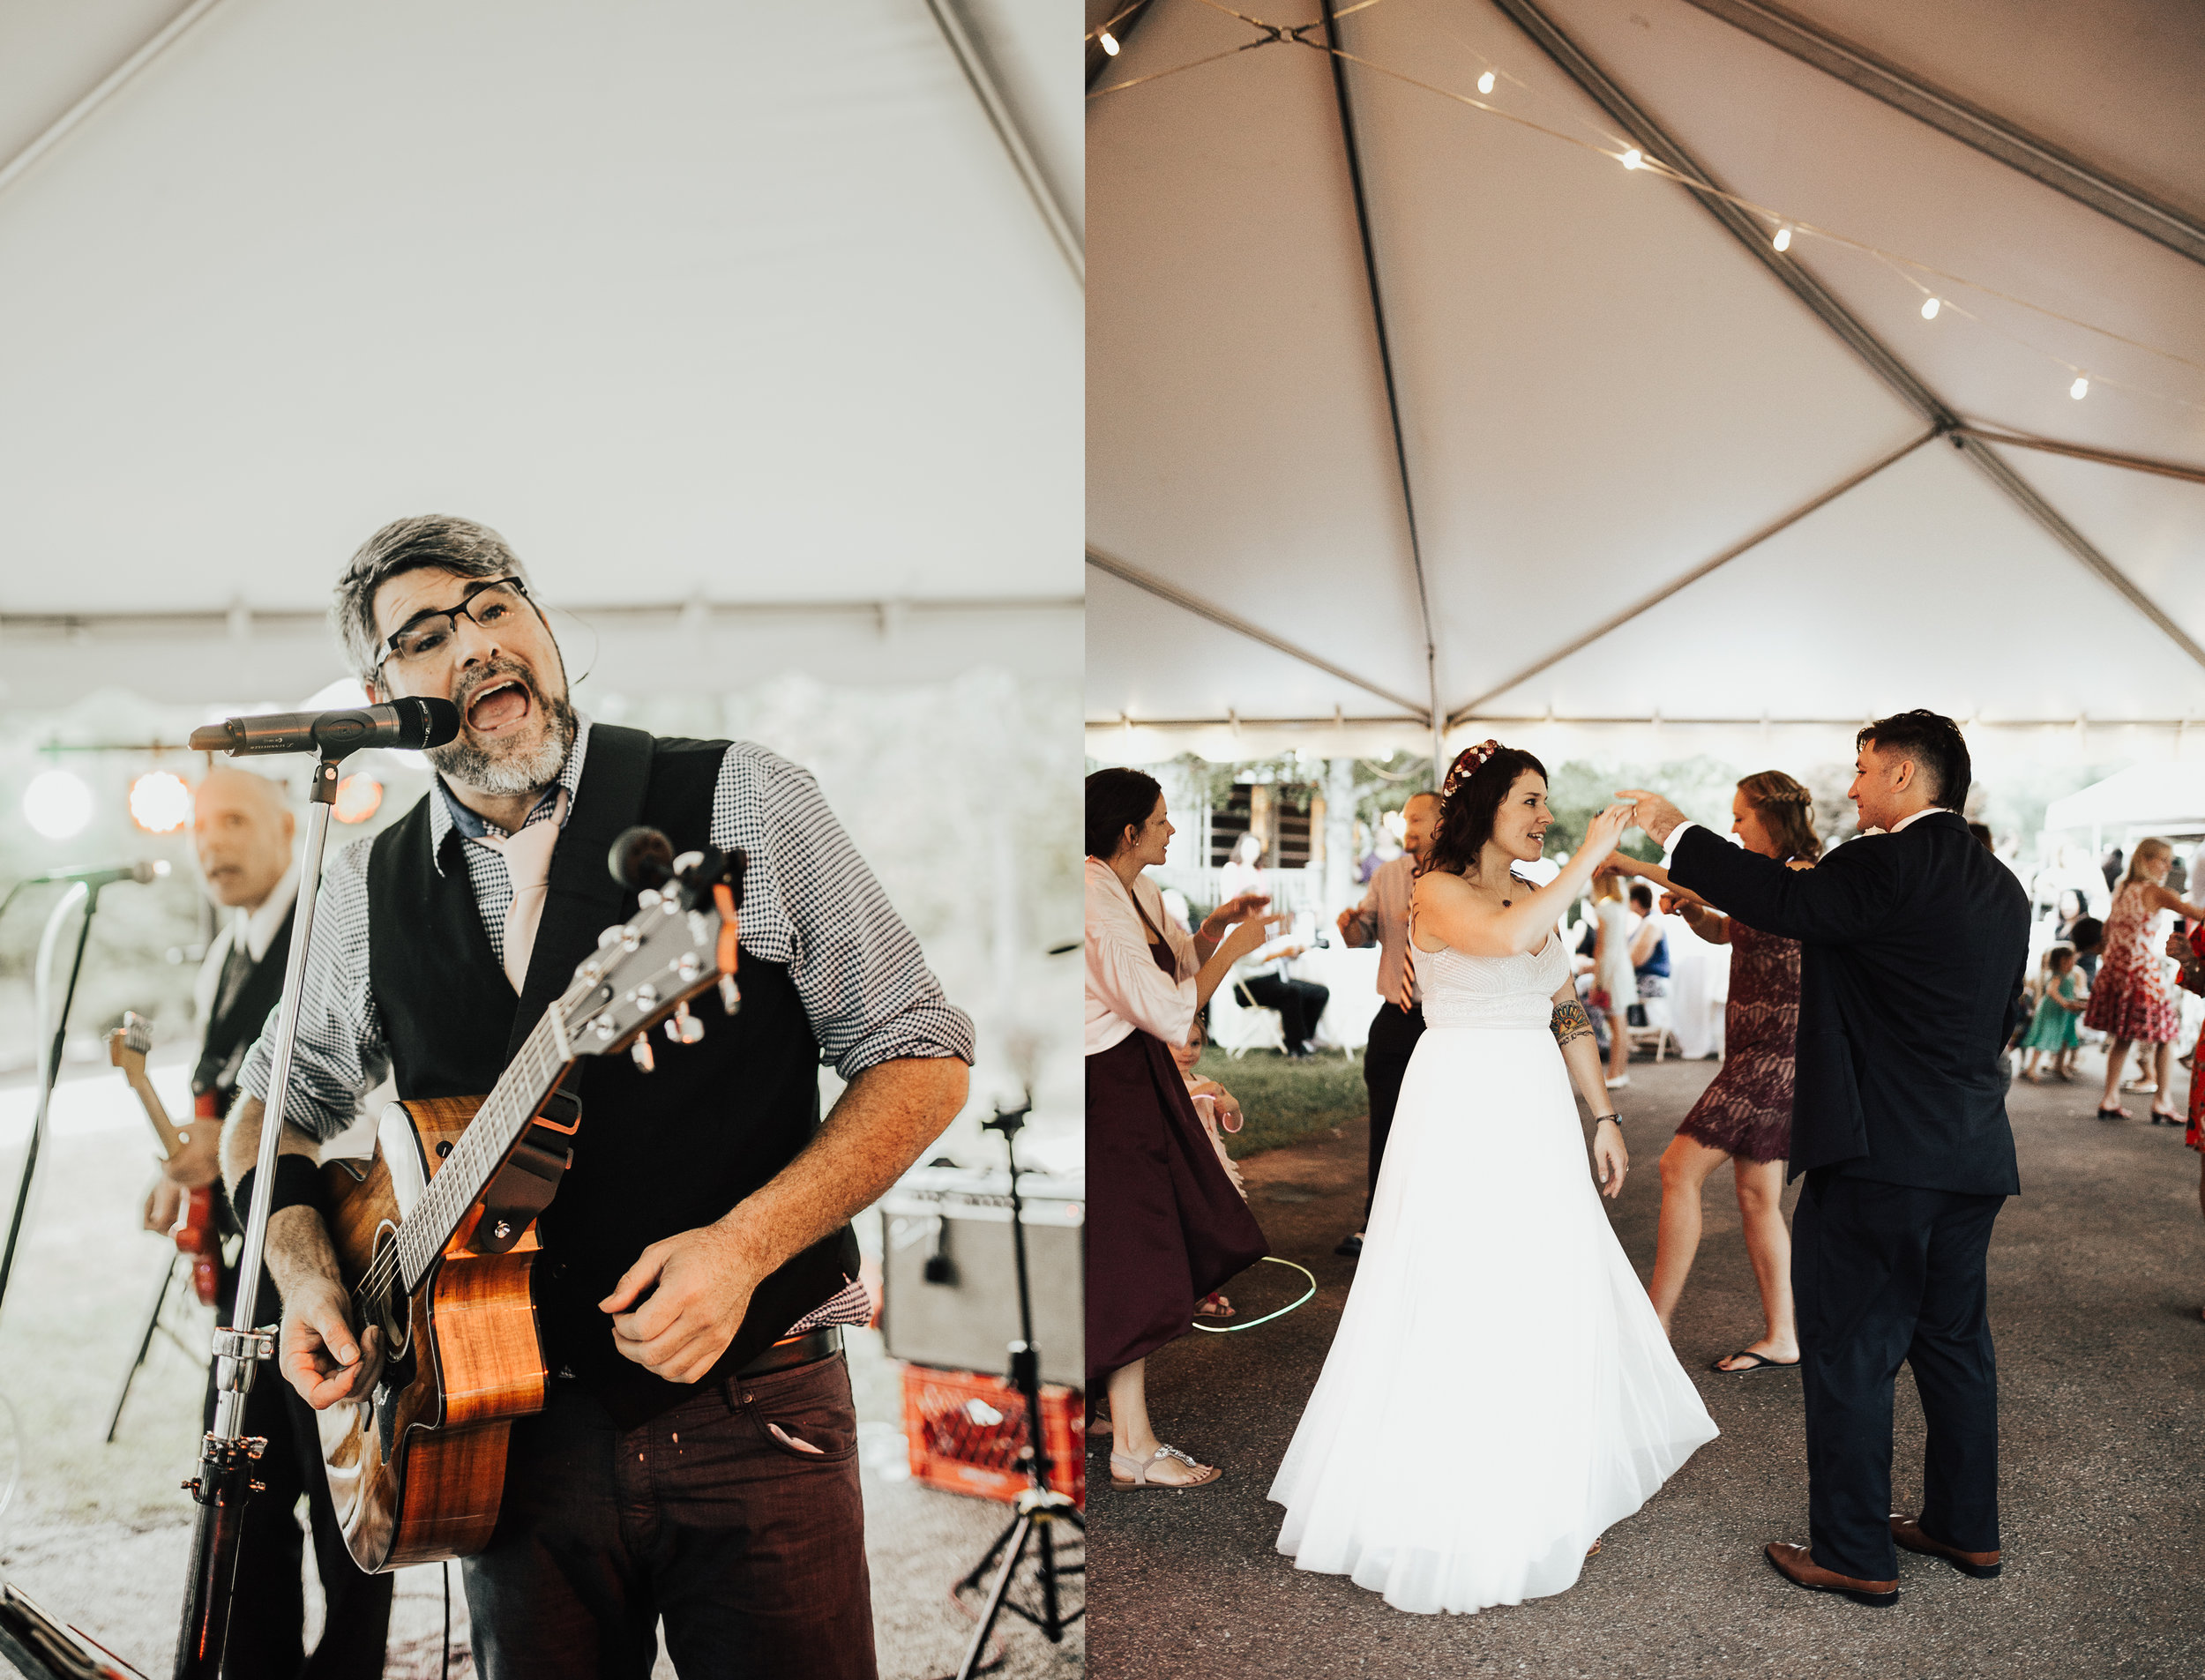 The day ended with Annie and Brad dancing the night away with all of their family and friends. We couldn't have asked for a more magical day. A huge congratulations to the both of them, they truly are two of the best people around!